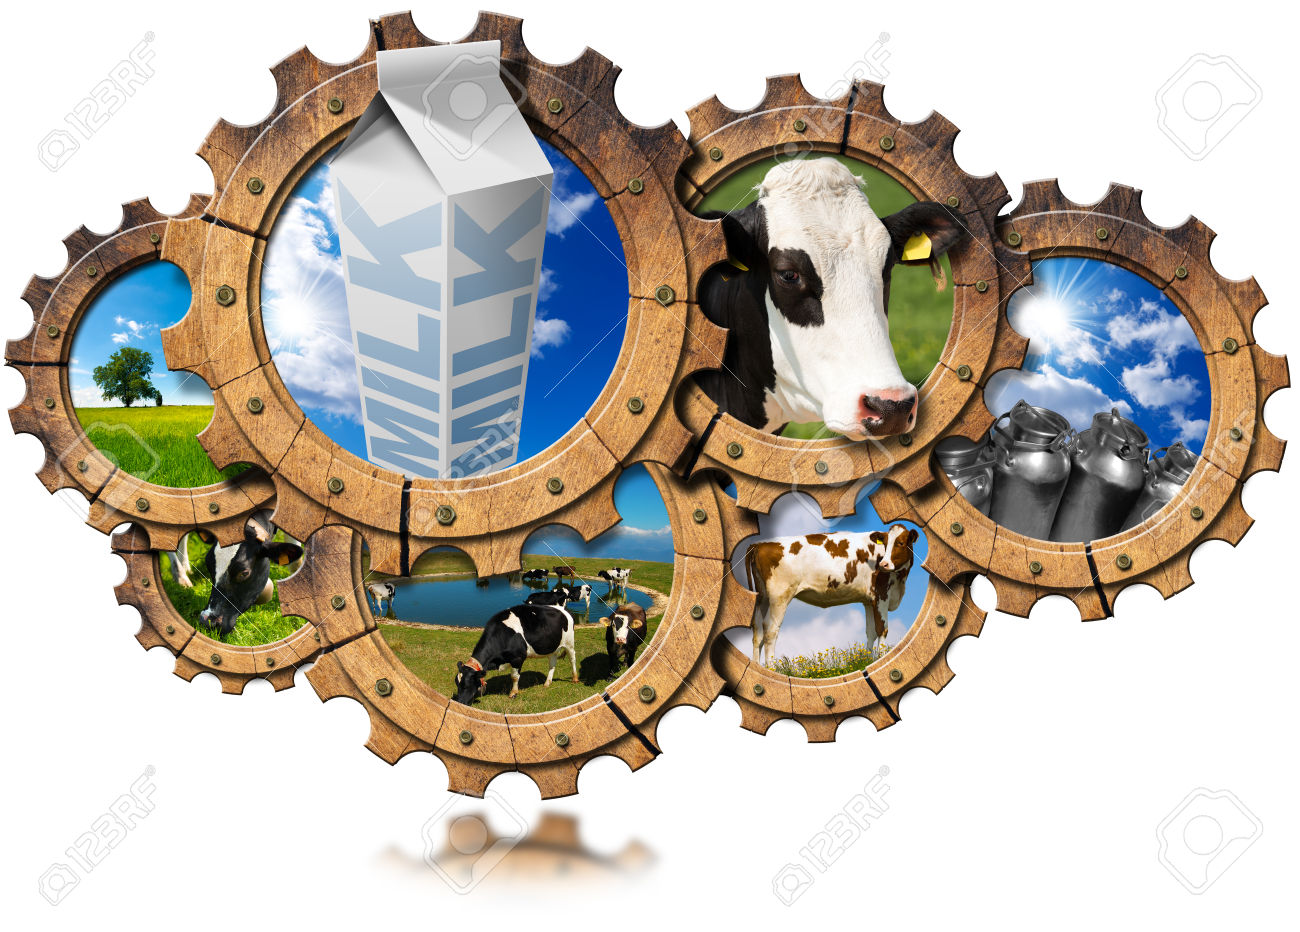 Seven Wooden Gears With Cows, Green Pasture, Steel Cans For Milk.